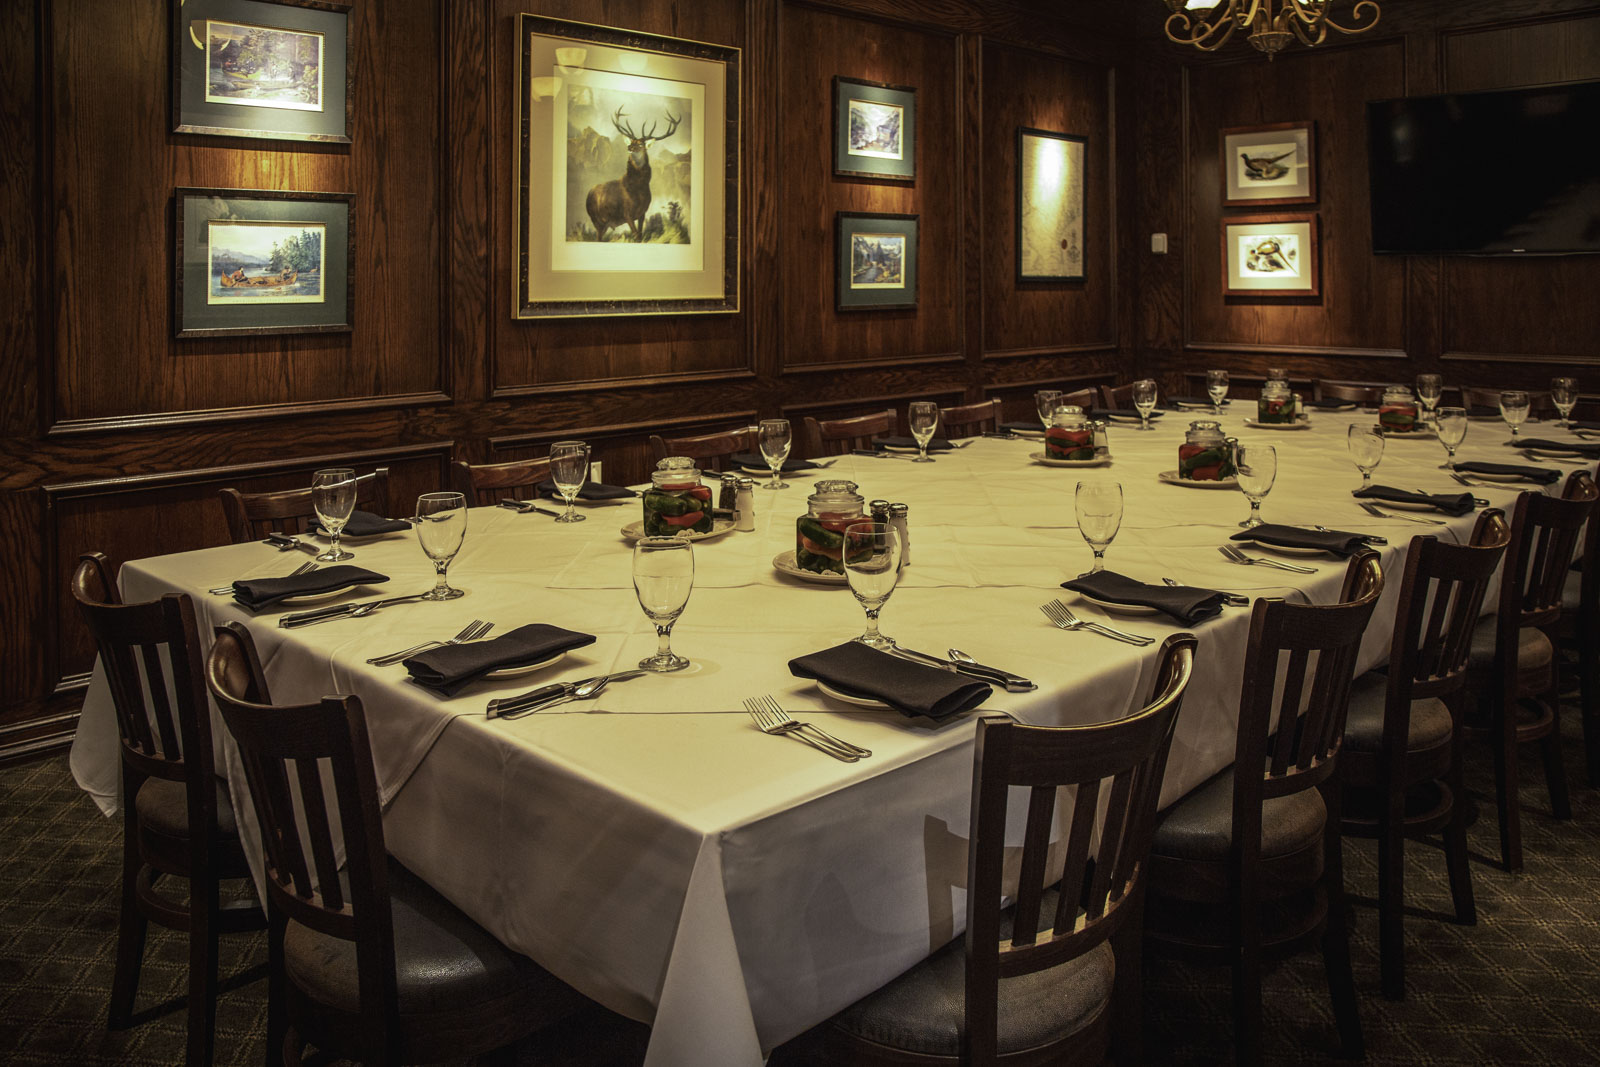 Bob's Steak & Chop House - Plano, TX (Private Dining)